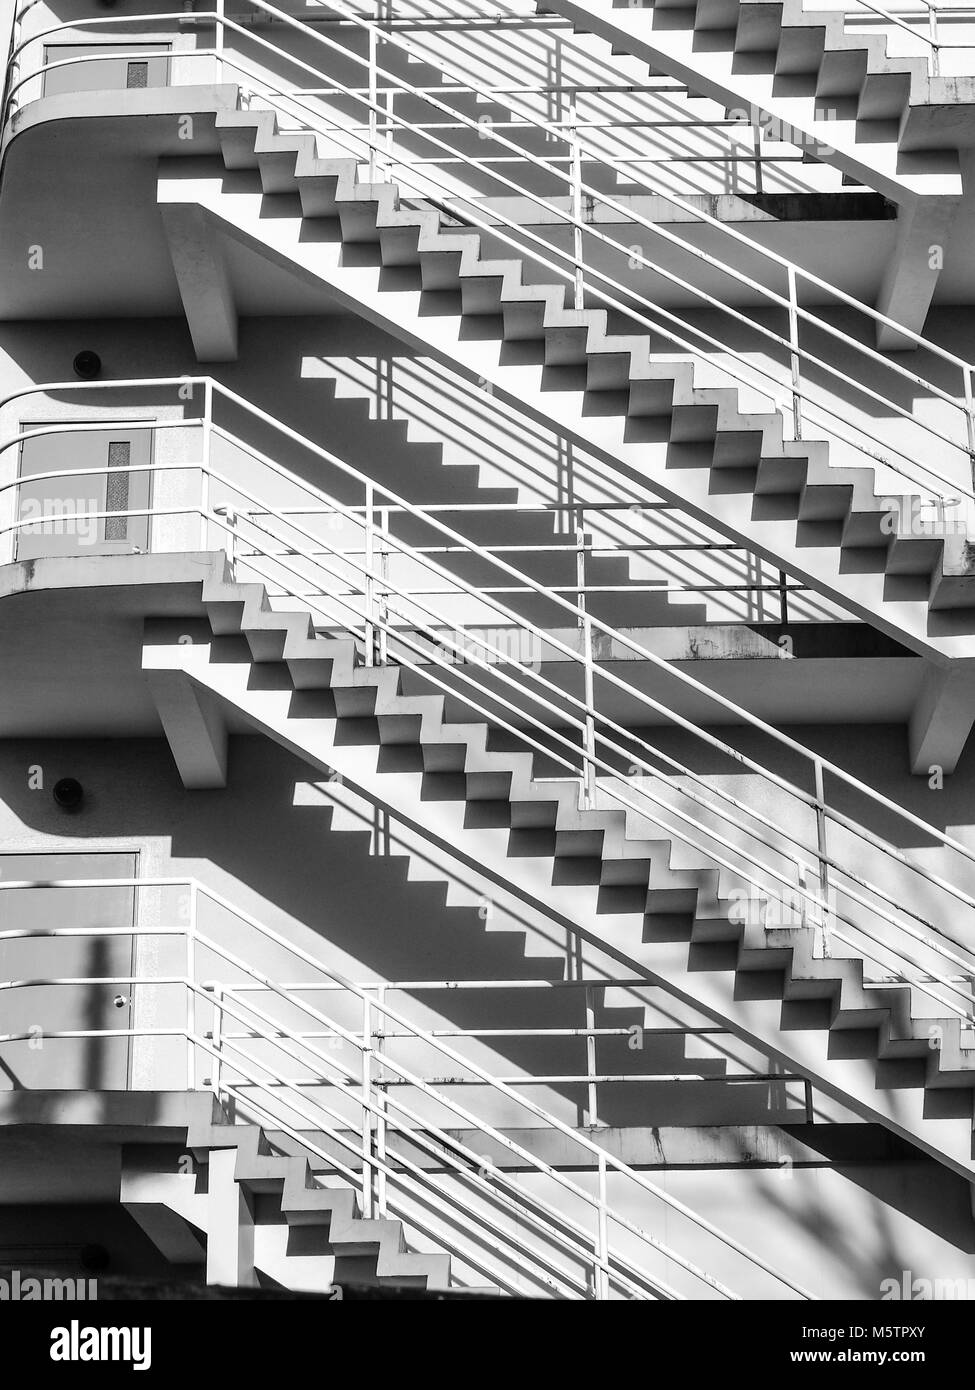 Abstract of floors outdoor stairways in black and white. - Stock Image